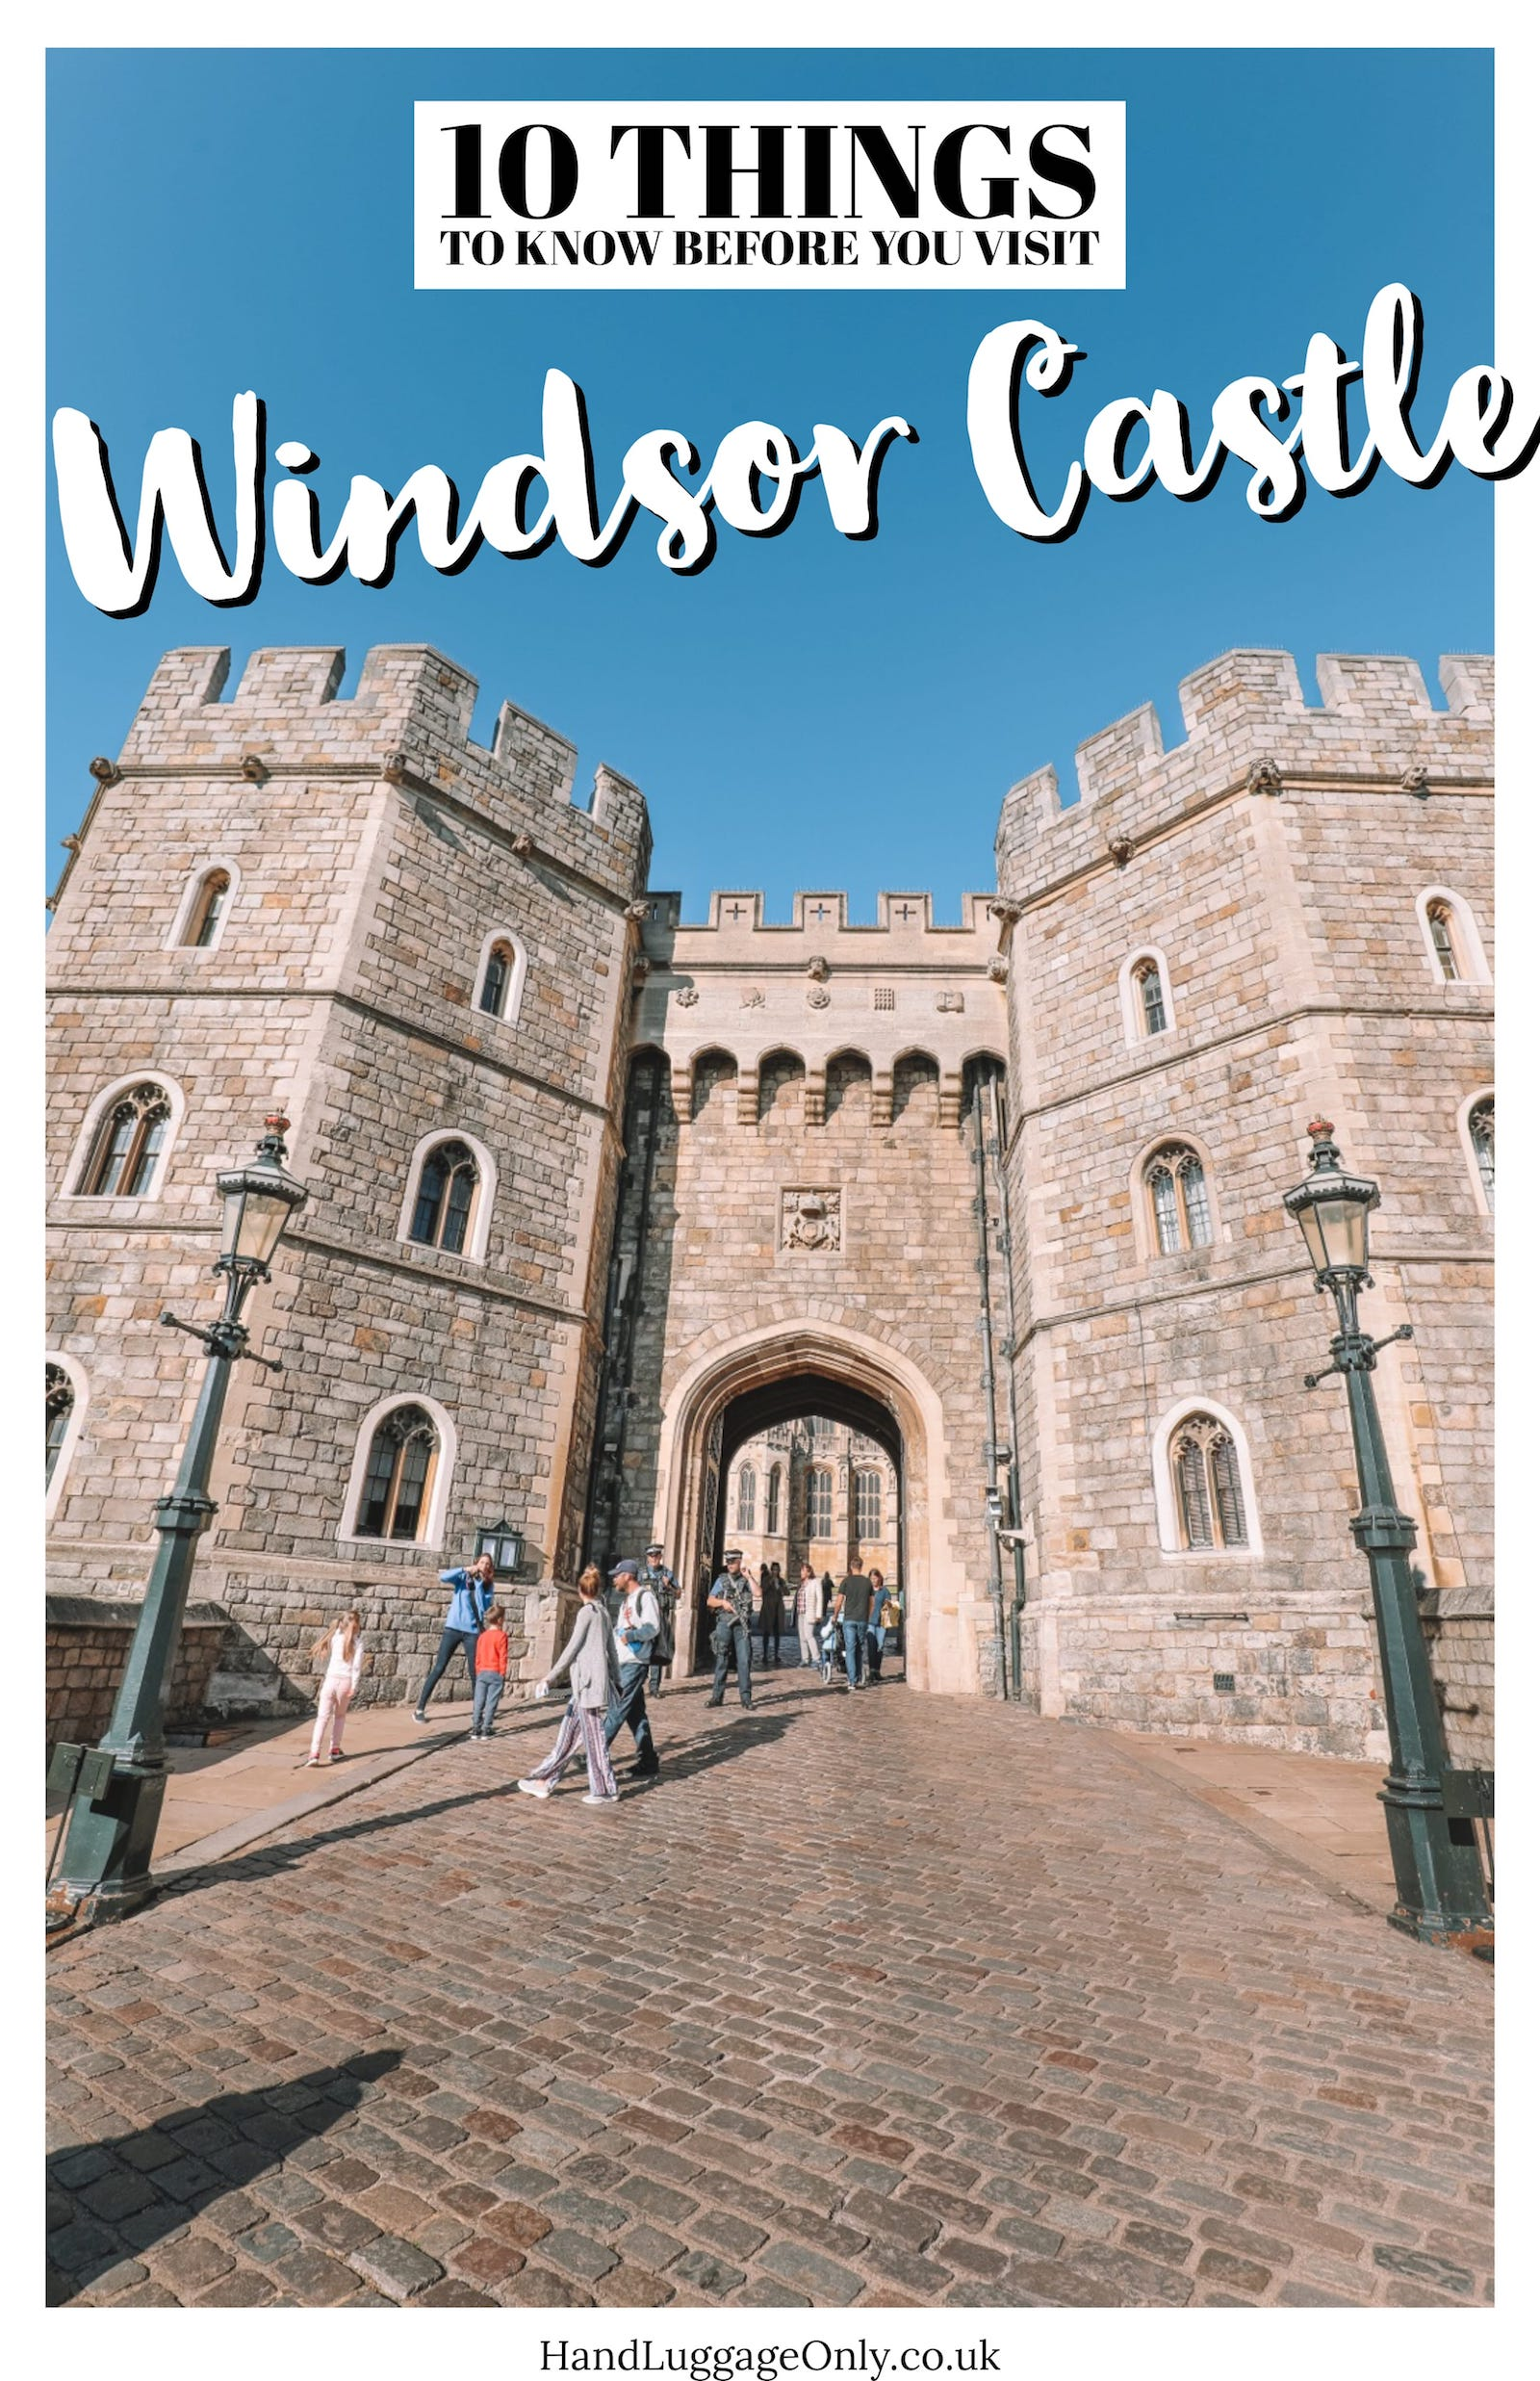 An Afternoon In Windsor Castle... (Plus, 10 Things To Know Before You Visit Windsor Castle).